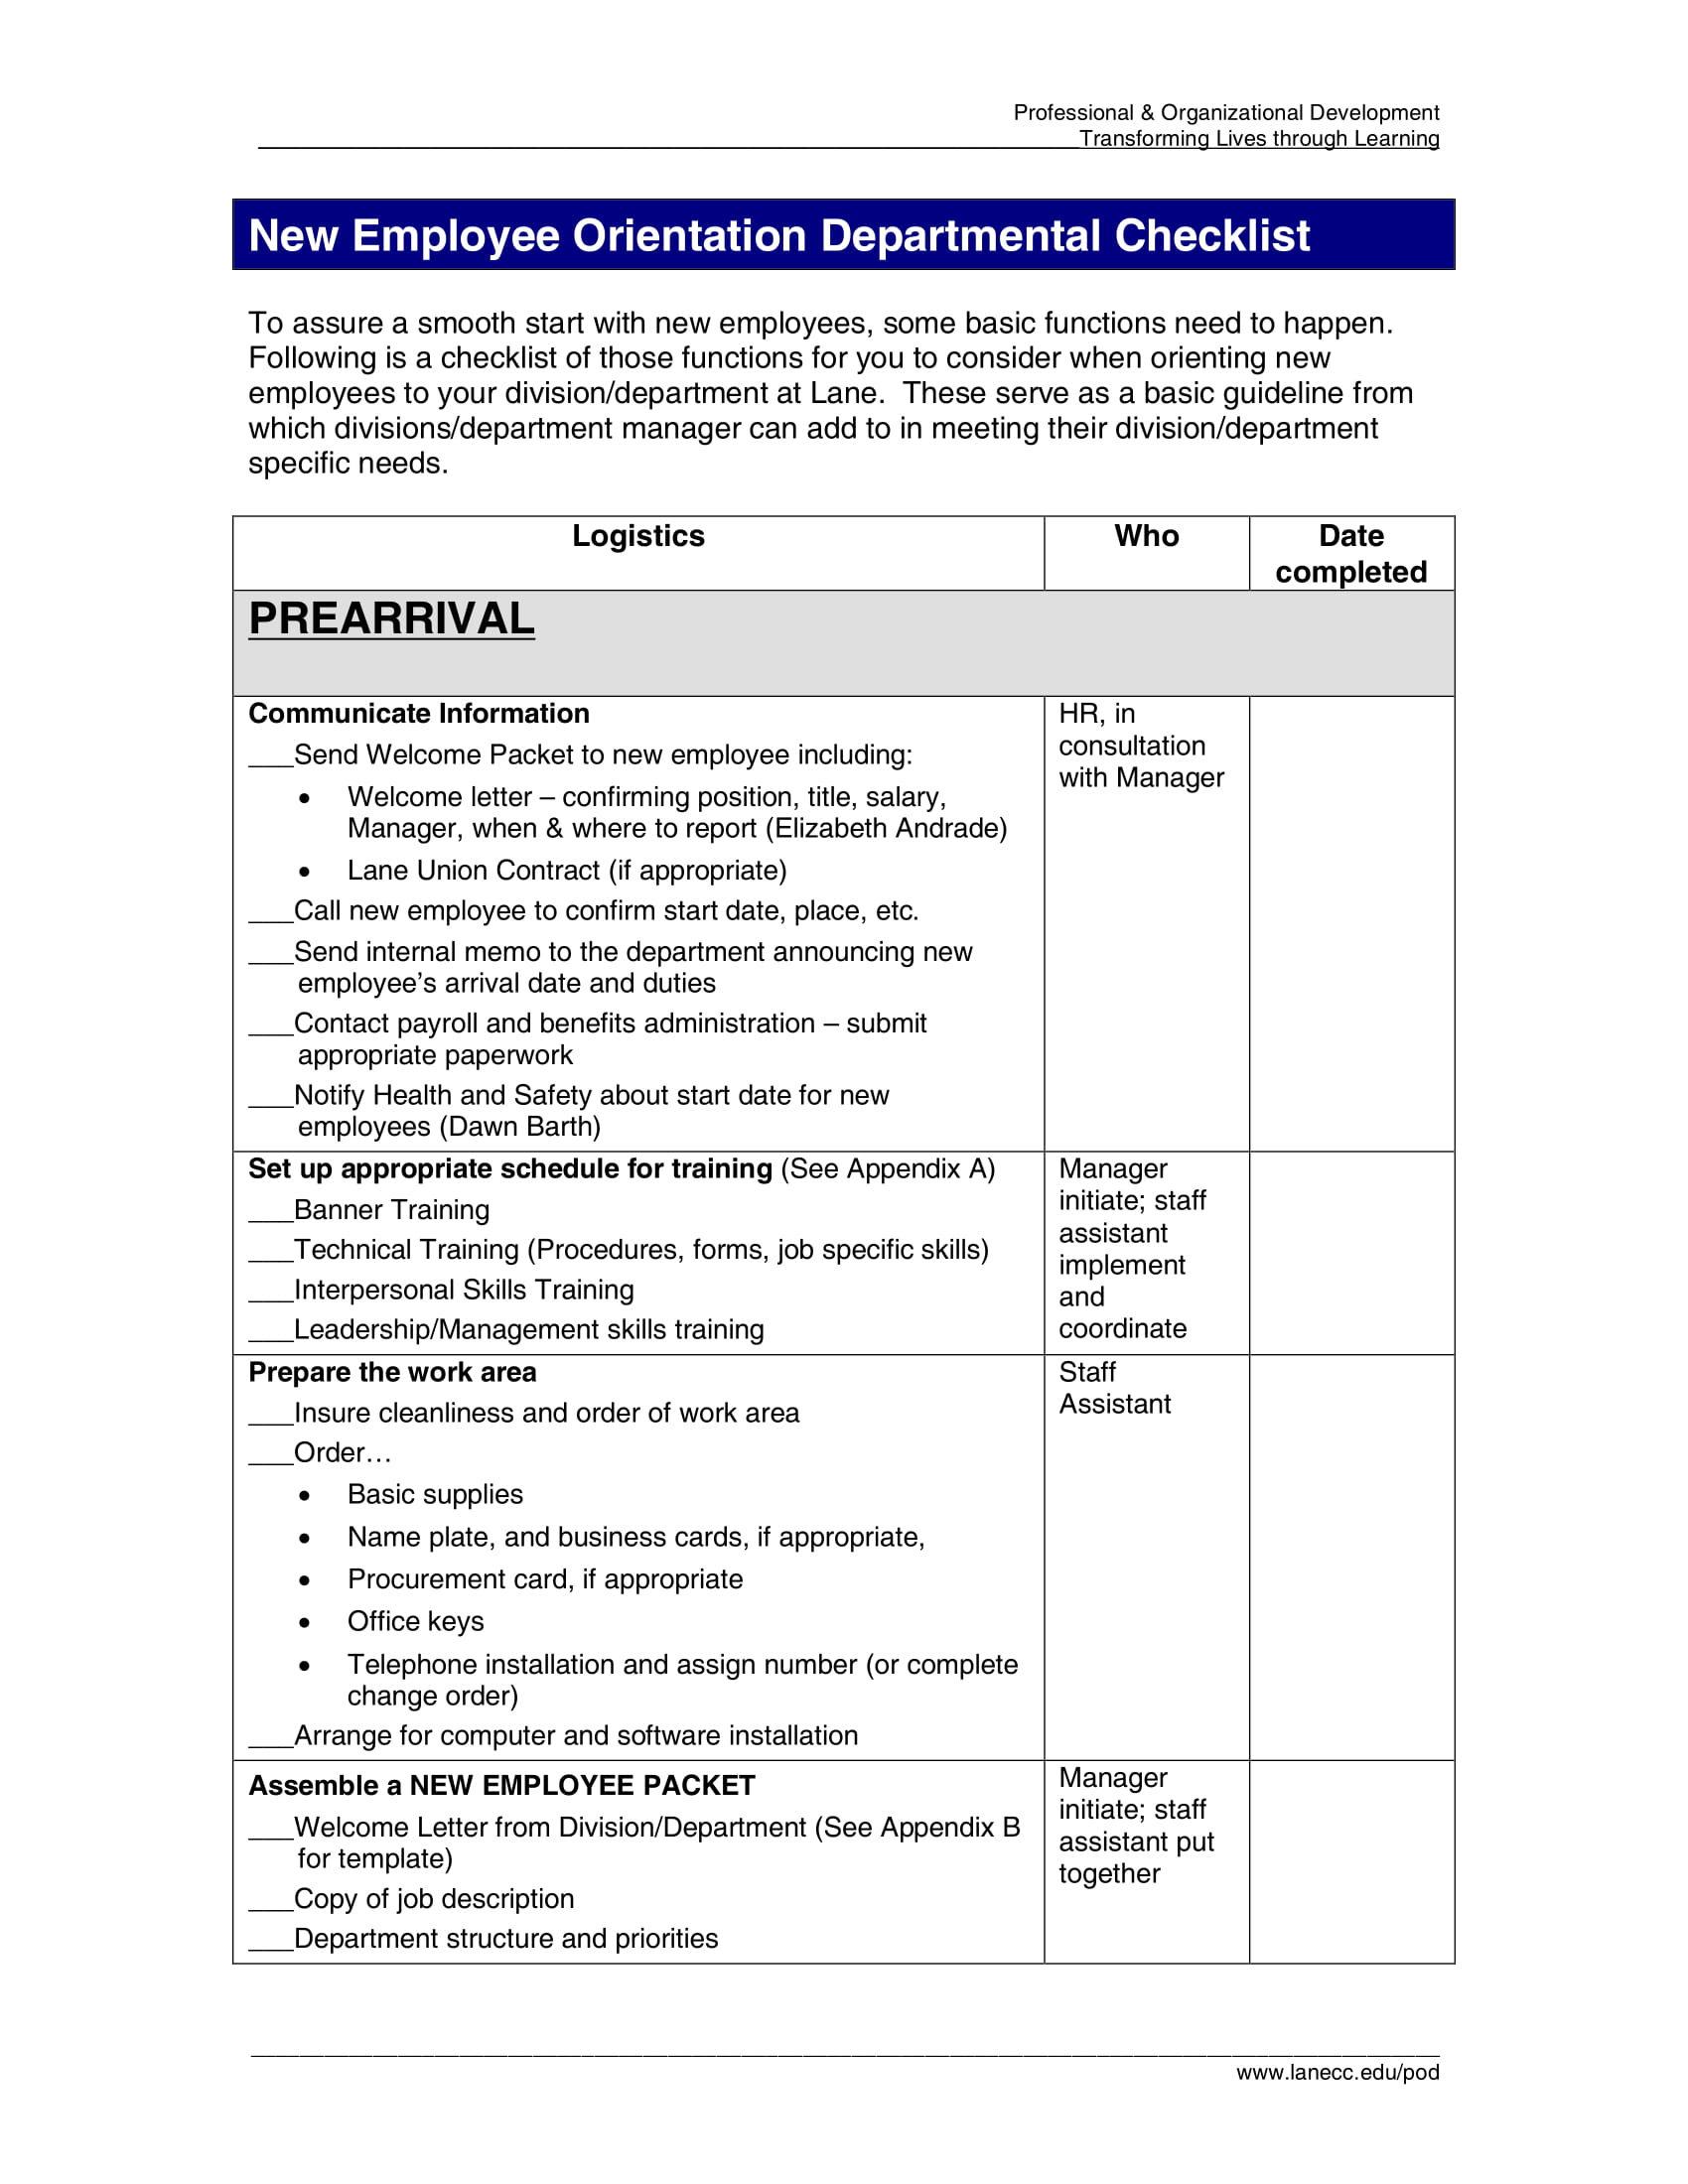 new employee orientation departmental checklist